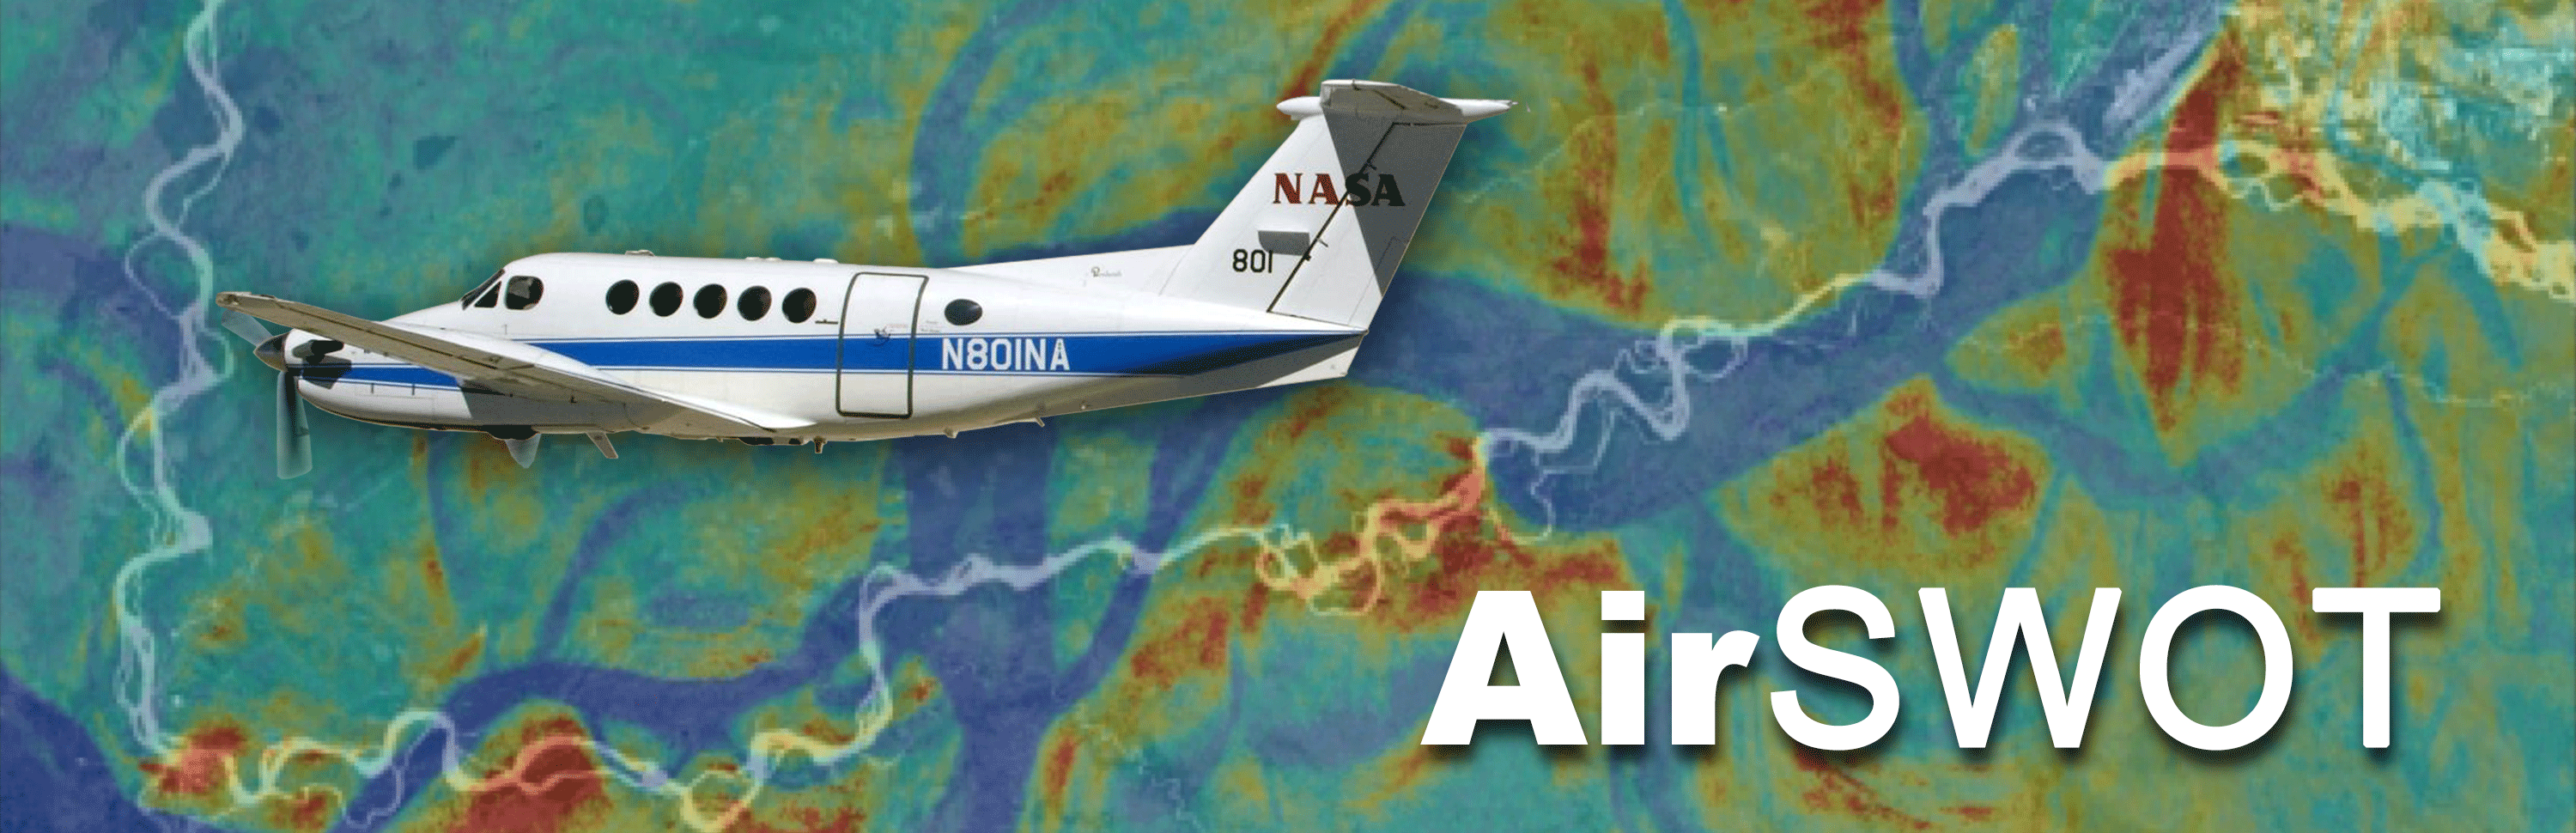 NASA N80INA airplane superimposed on a map